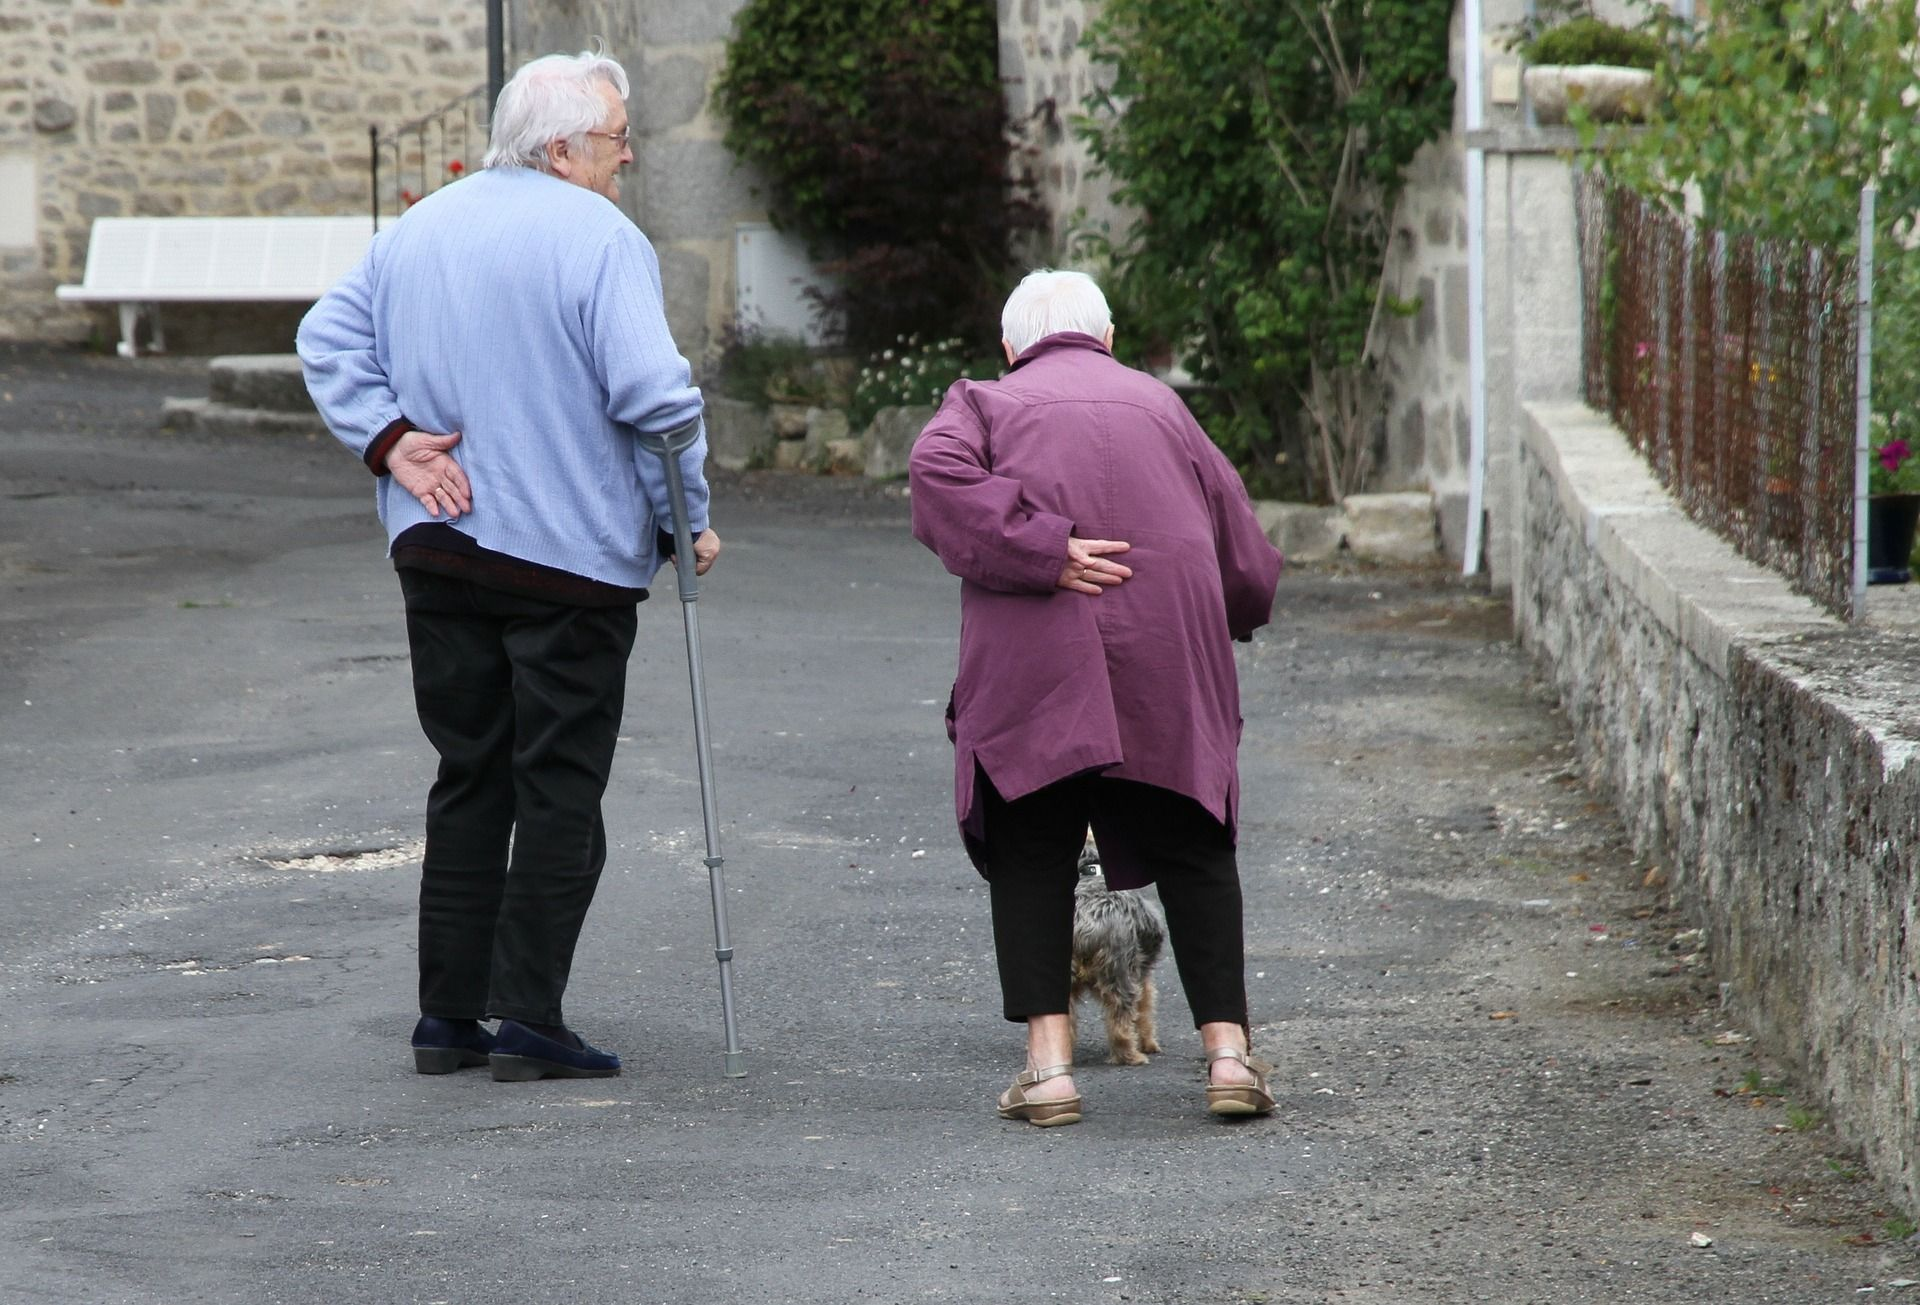 Seniors Neglected, Used (Abused?) by Family Elderly